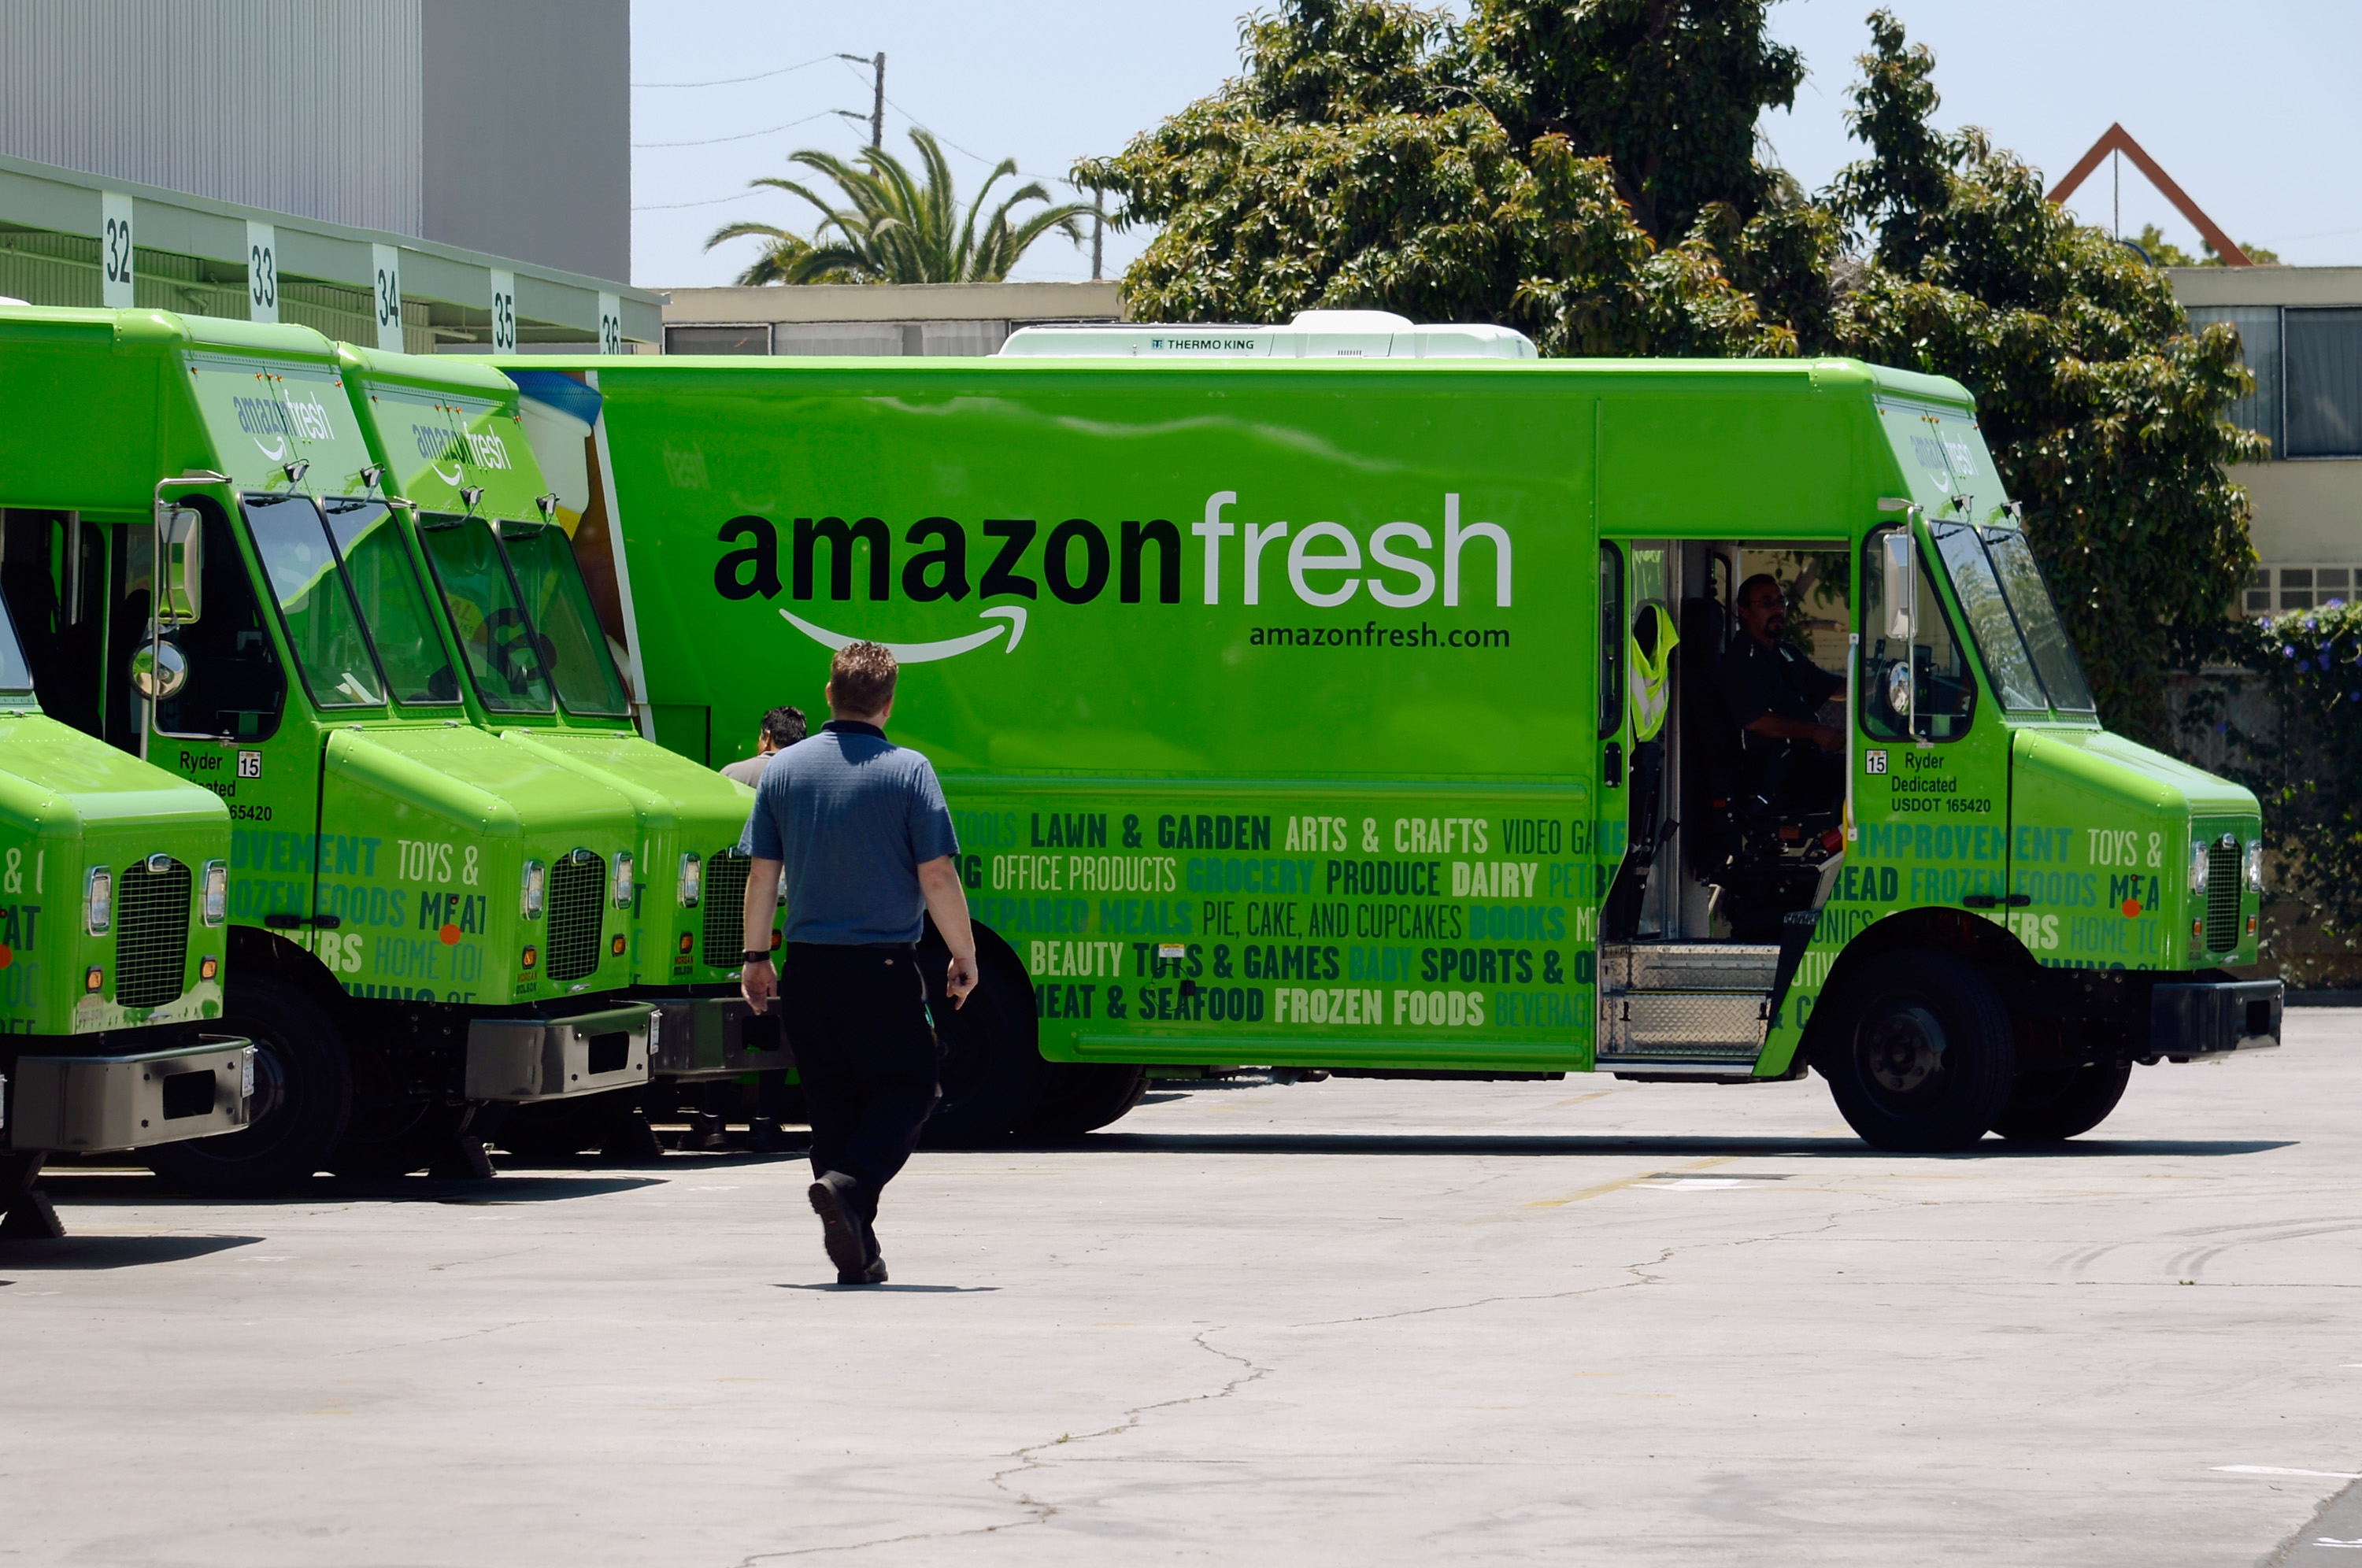 Amazon is going to launch its Fresh grocery delivery service in new